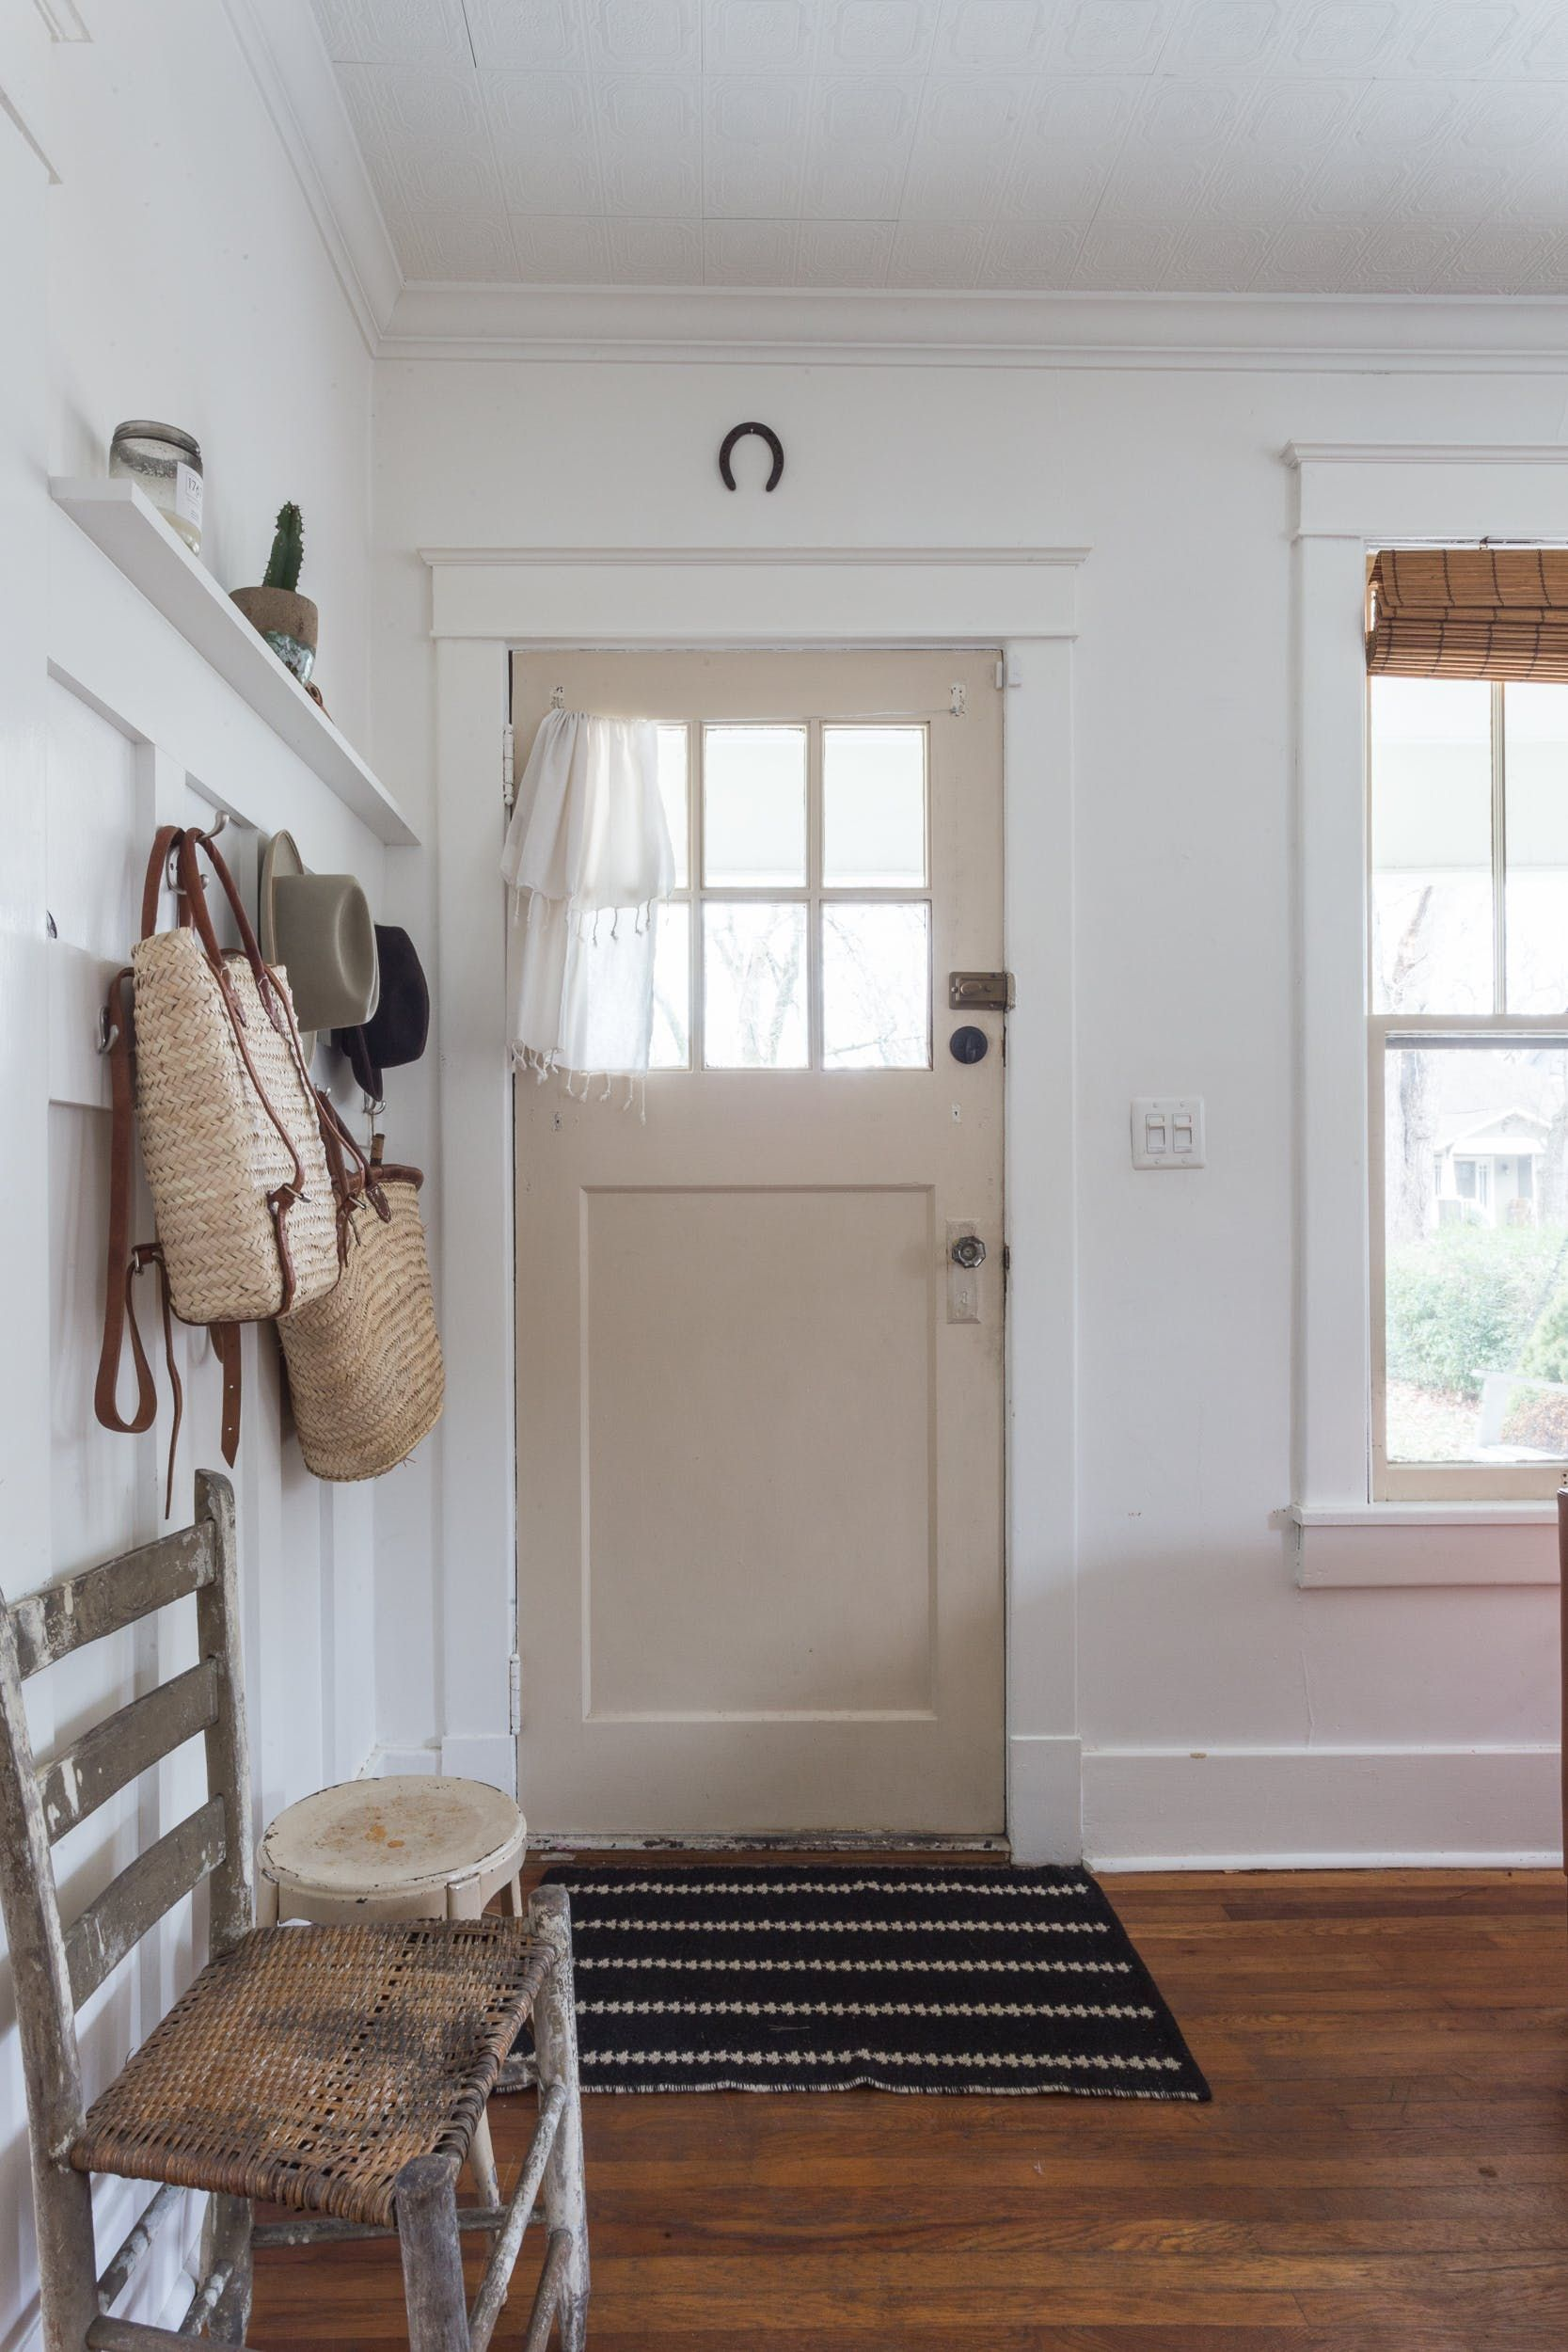 The welcoming entryway. The built-in hooks are a nice space to hang your coat and take in the beauty of Kaitie and Tyler's home.